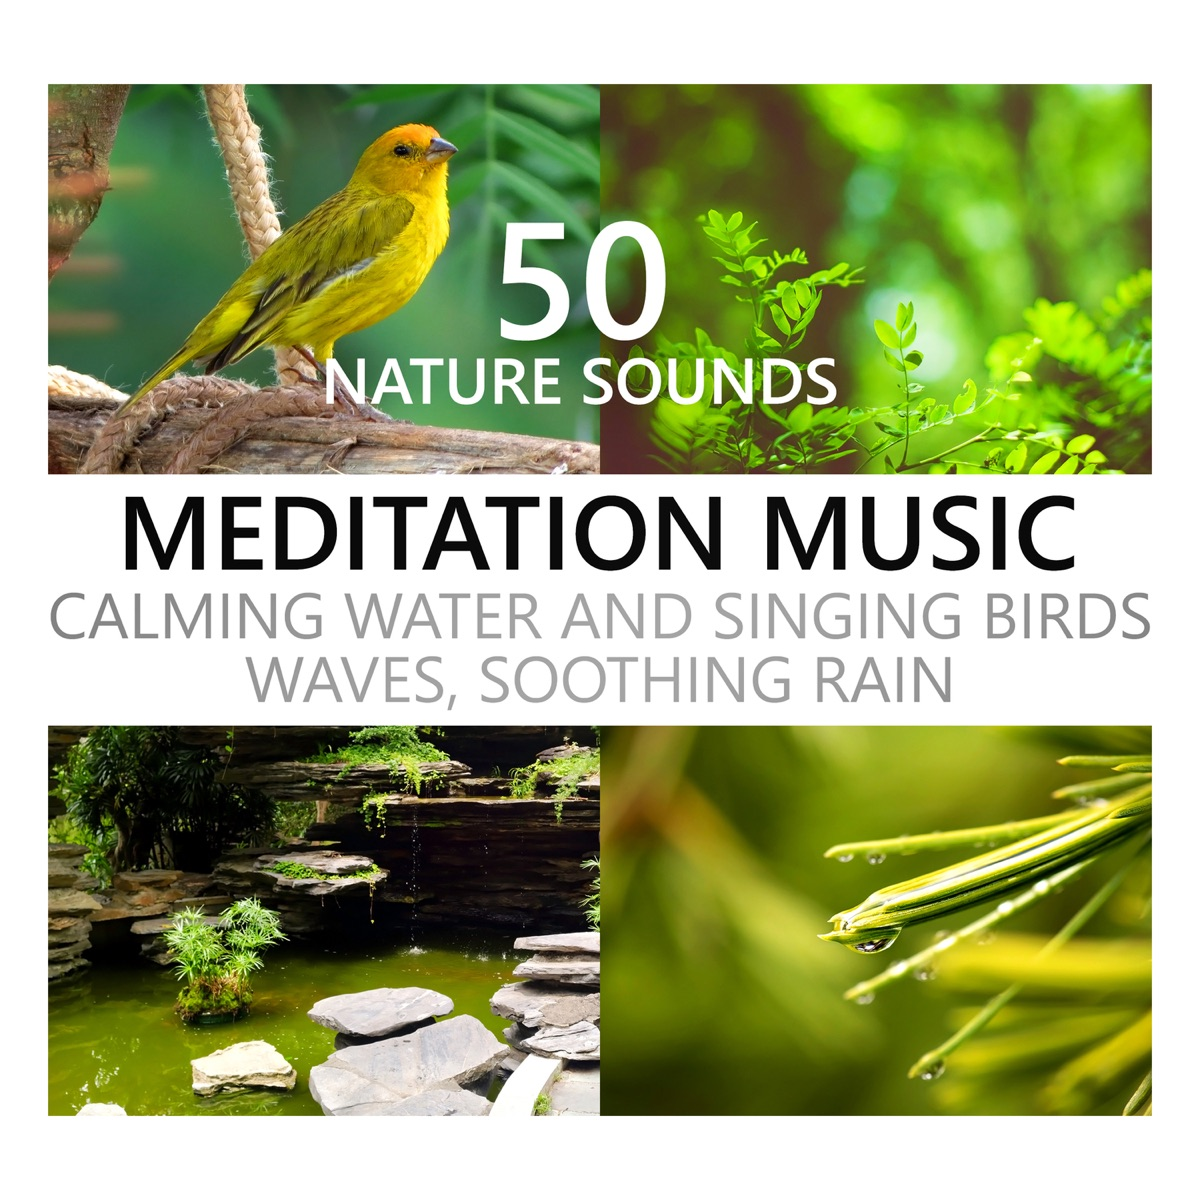 Nature Sounds Meditation Music: Calming Water and Singing